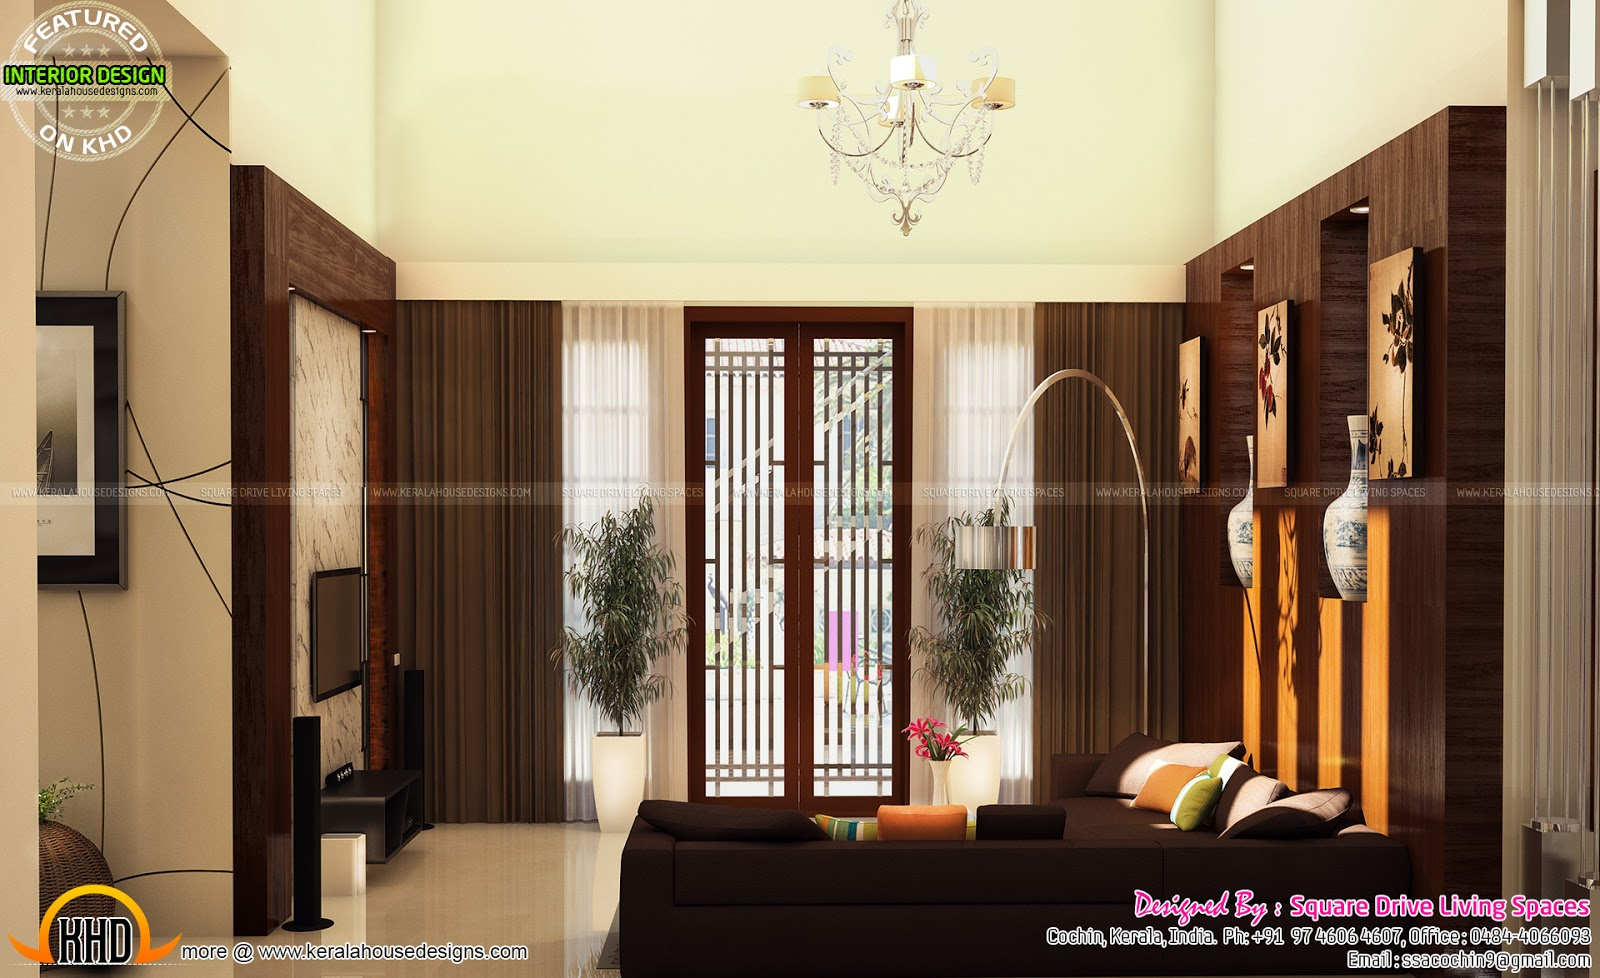 Interior designs of master bedroom living kitchen and for Kerala house living room interior design